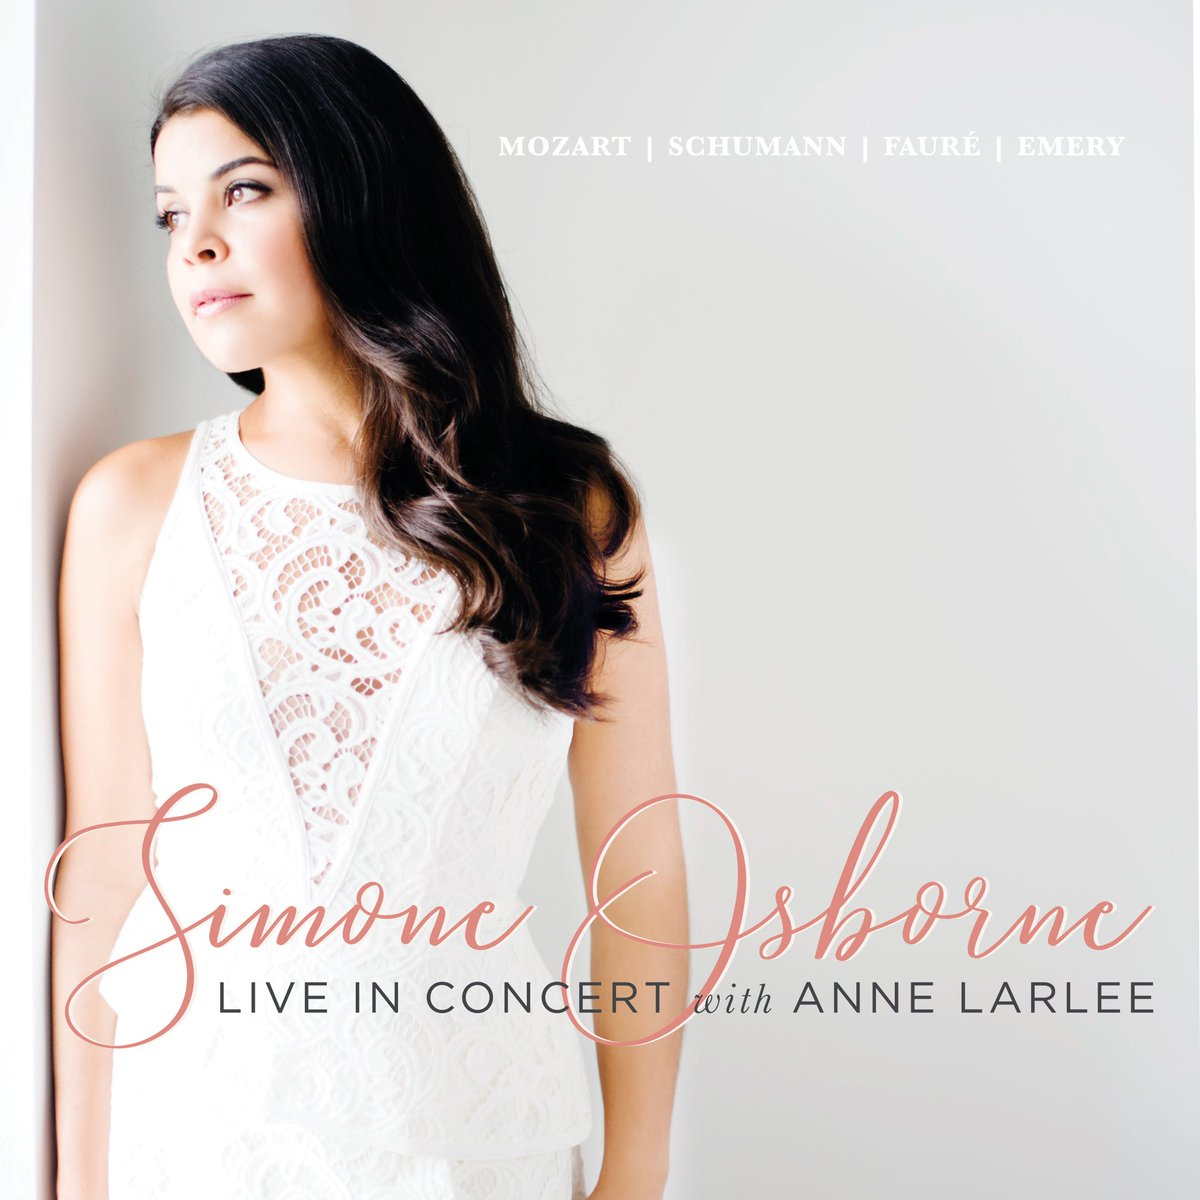 2018 Simone Osborne Live in Concert with Anne Larlee | CD Cover.jpg